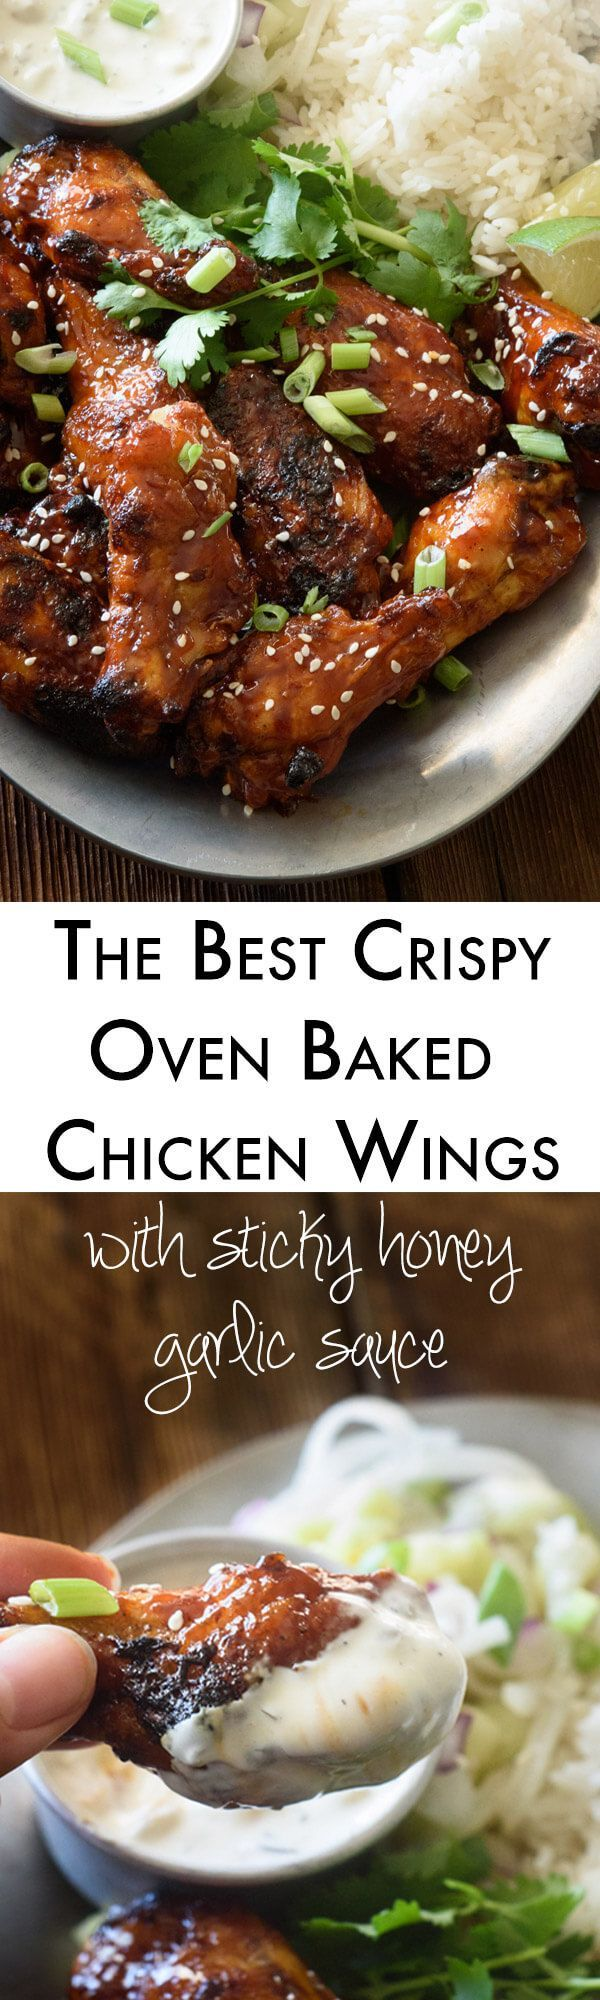 You may never fry a chicken wing again after you taste these crispy oven baked chicken wings! Get all the tricks and tips for the perfect wings and smother them in a delicious sticky honey garlic sauce. I can't keep the kids (or adults) out of these.